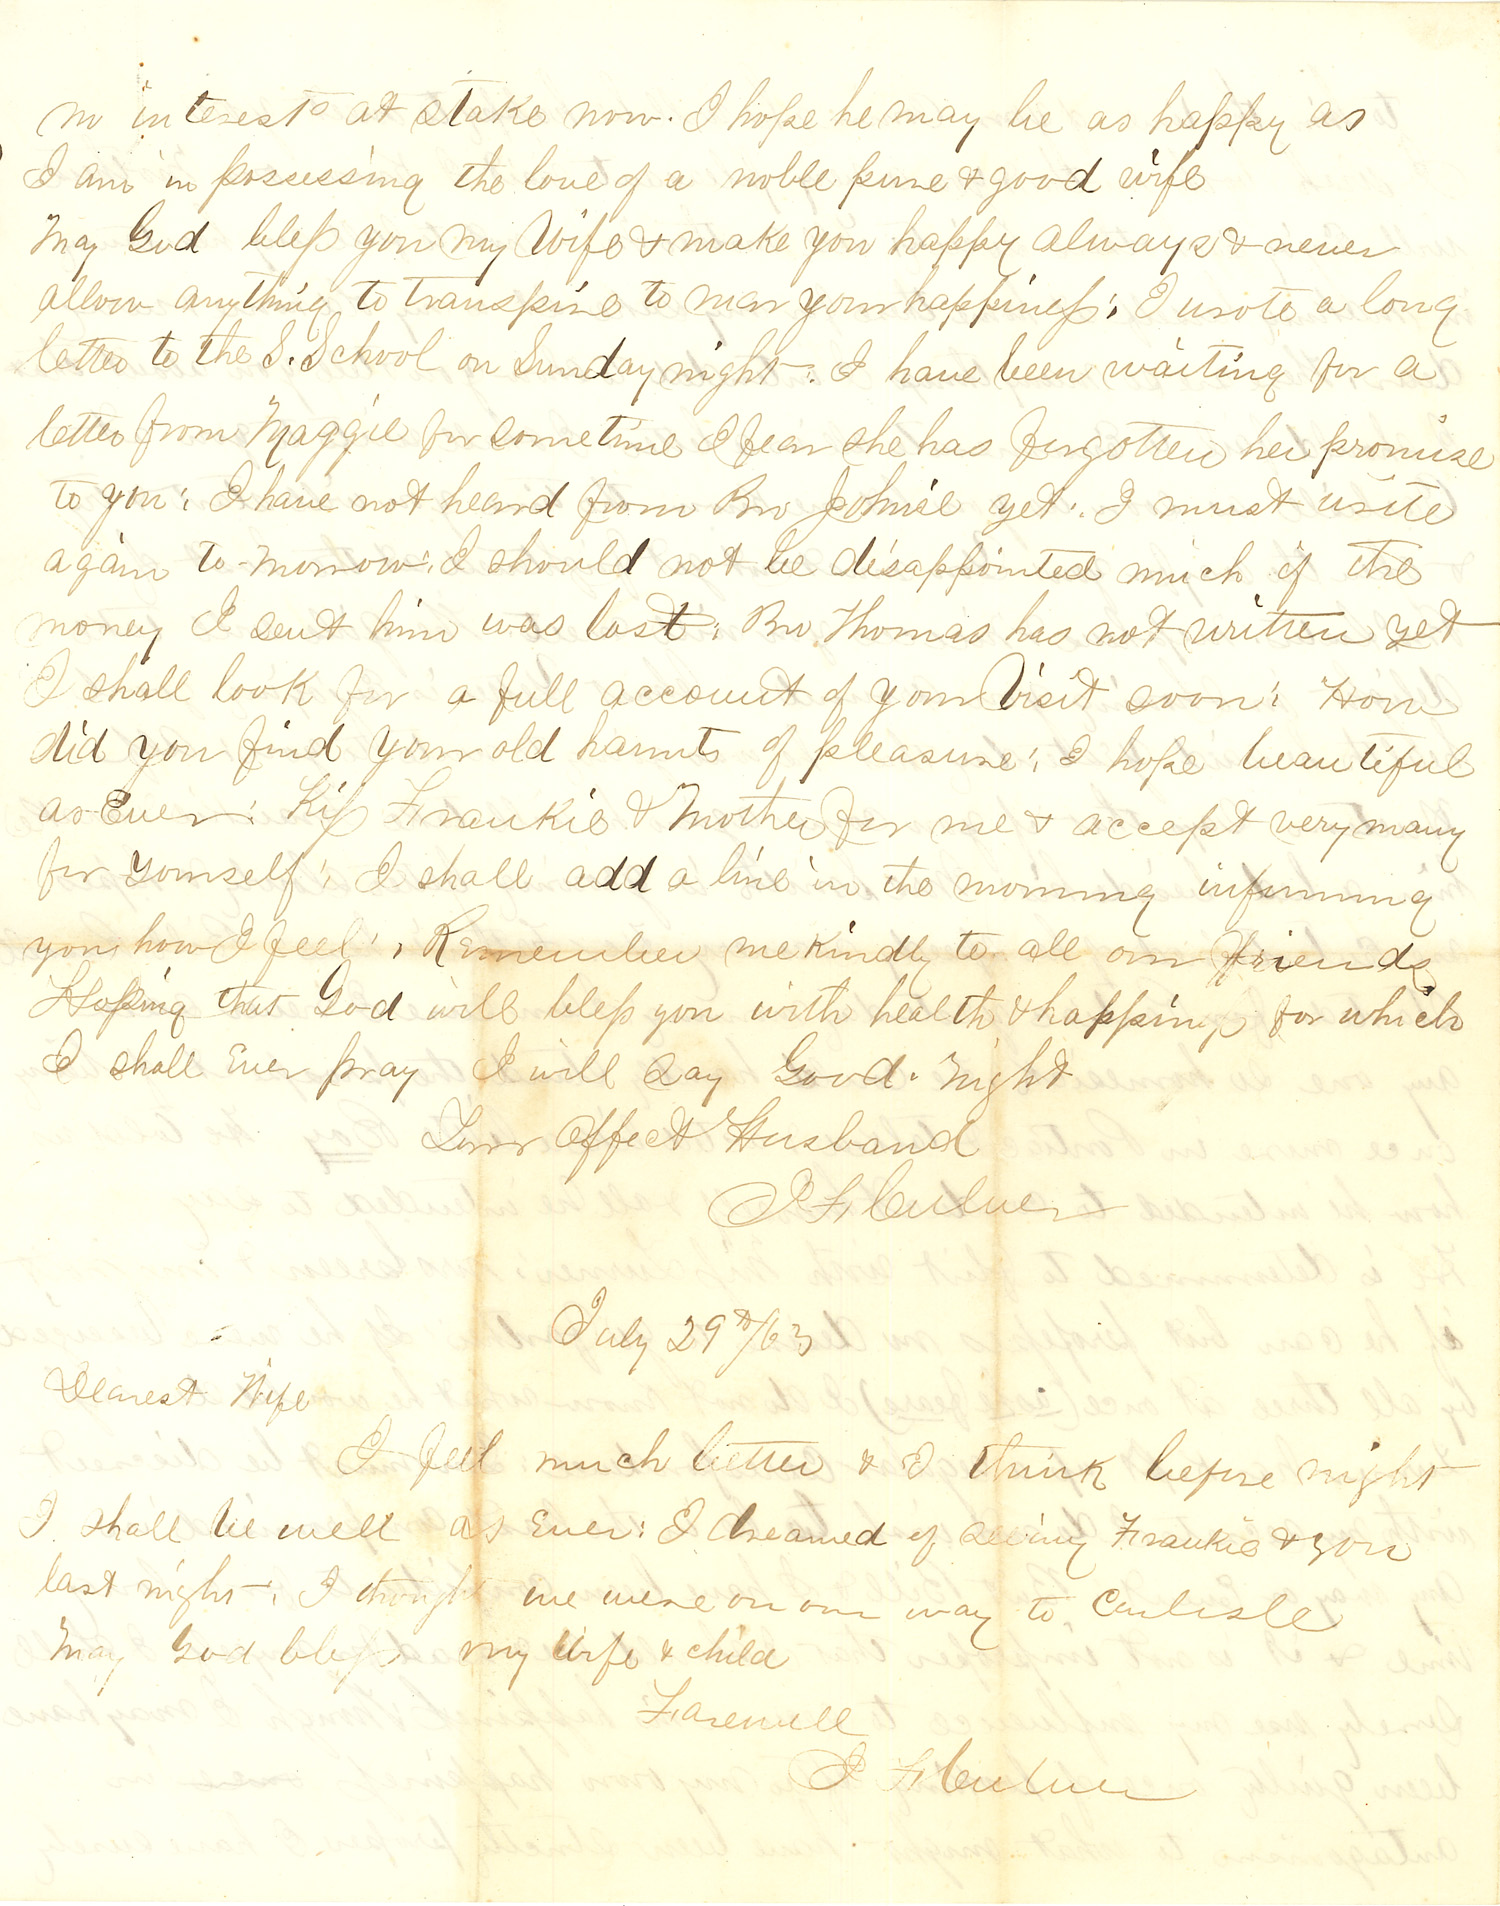 Joseph Culver Letter, July 29, 1863, Page 1